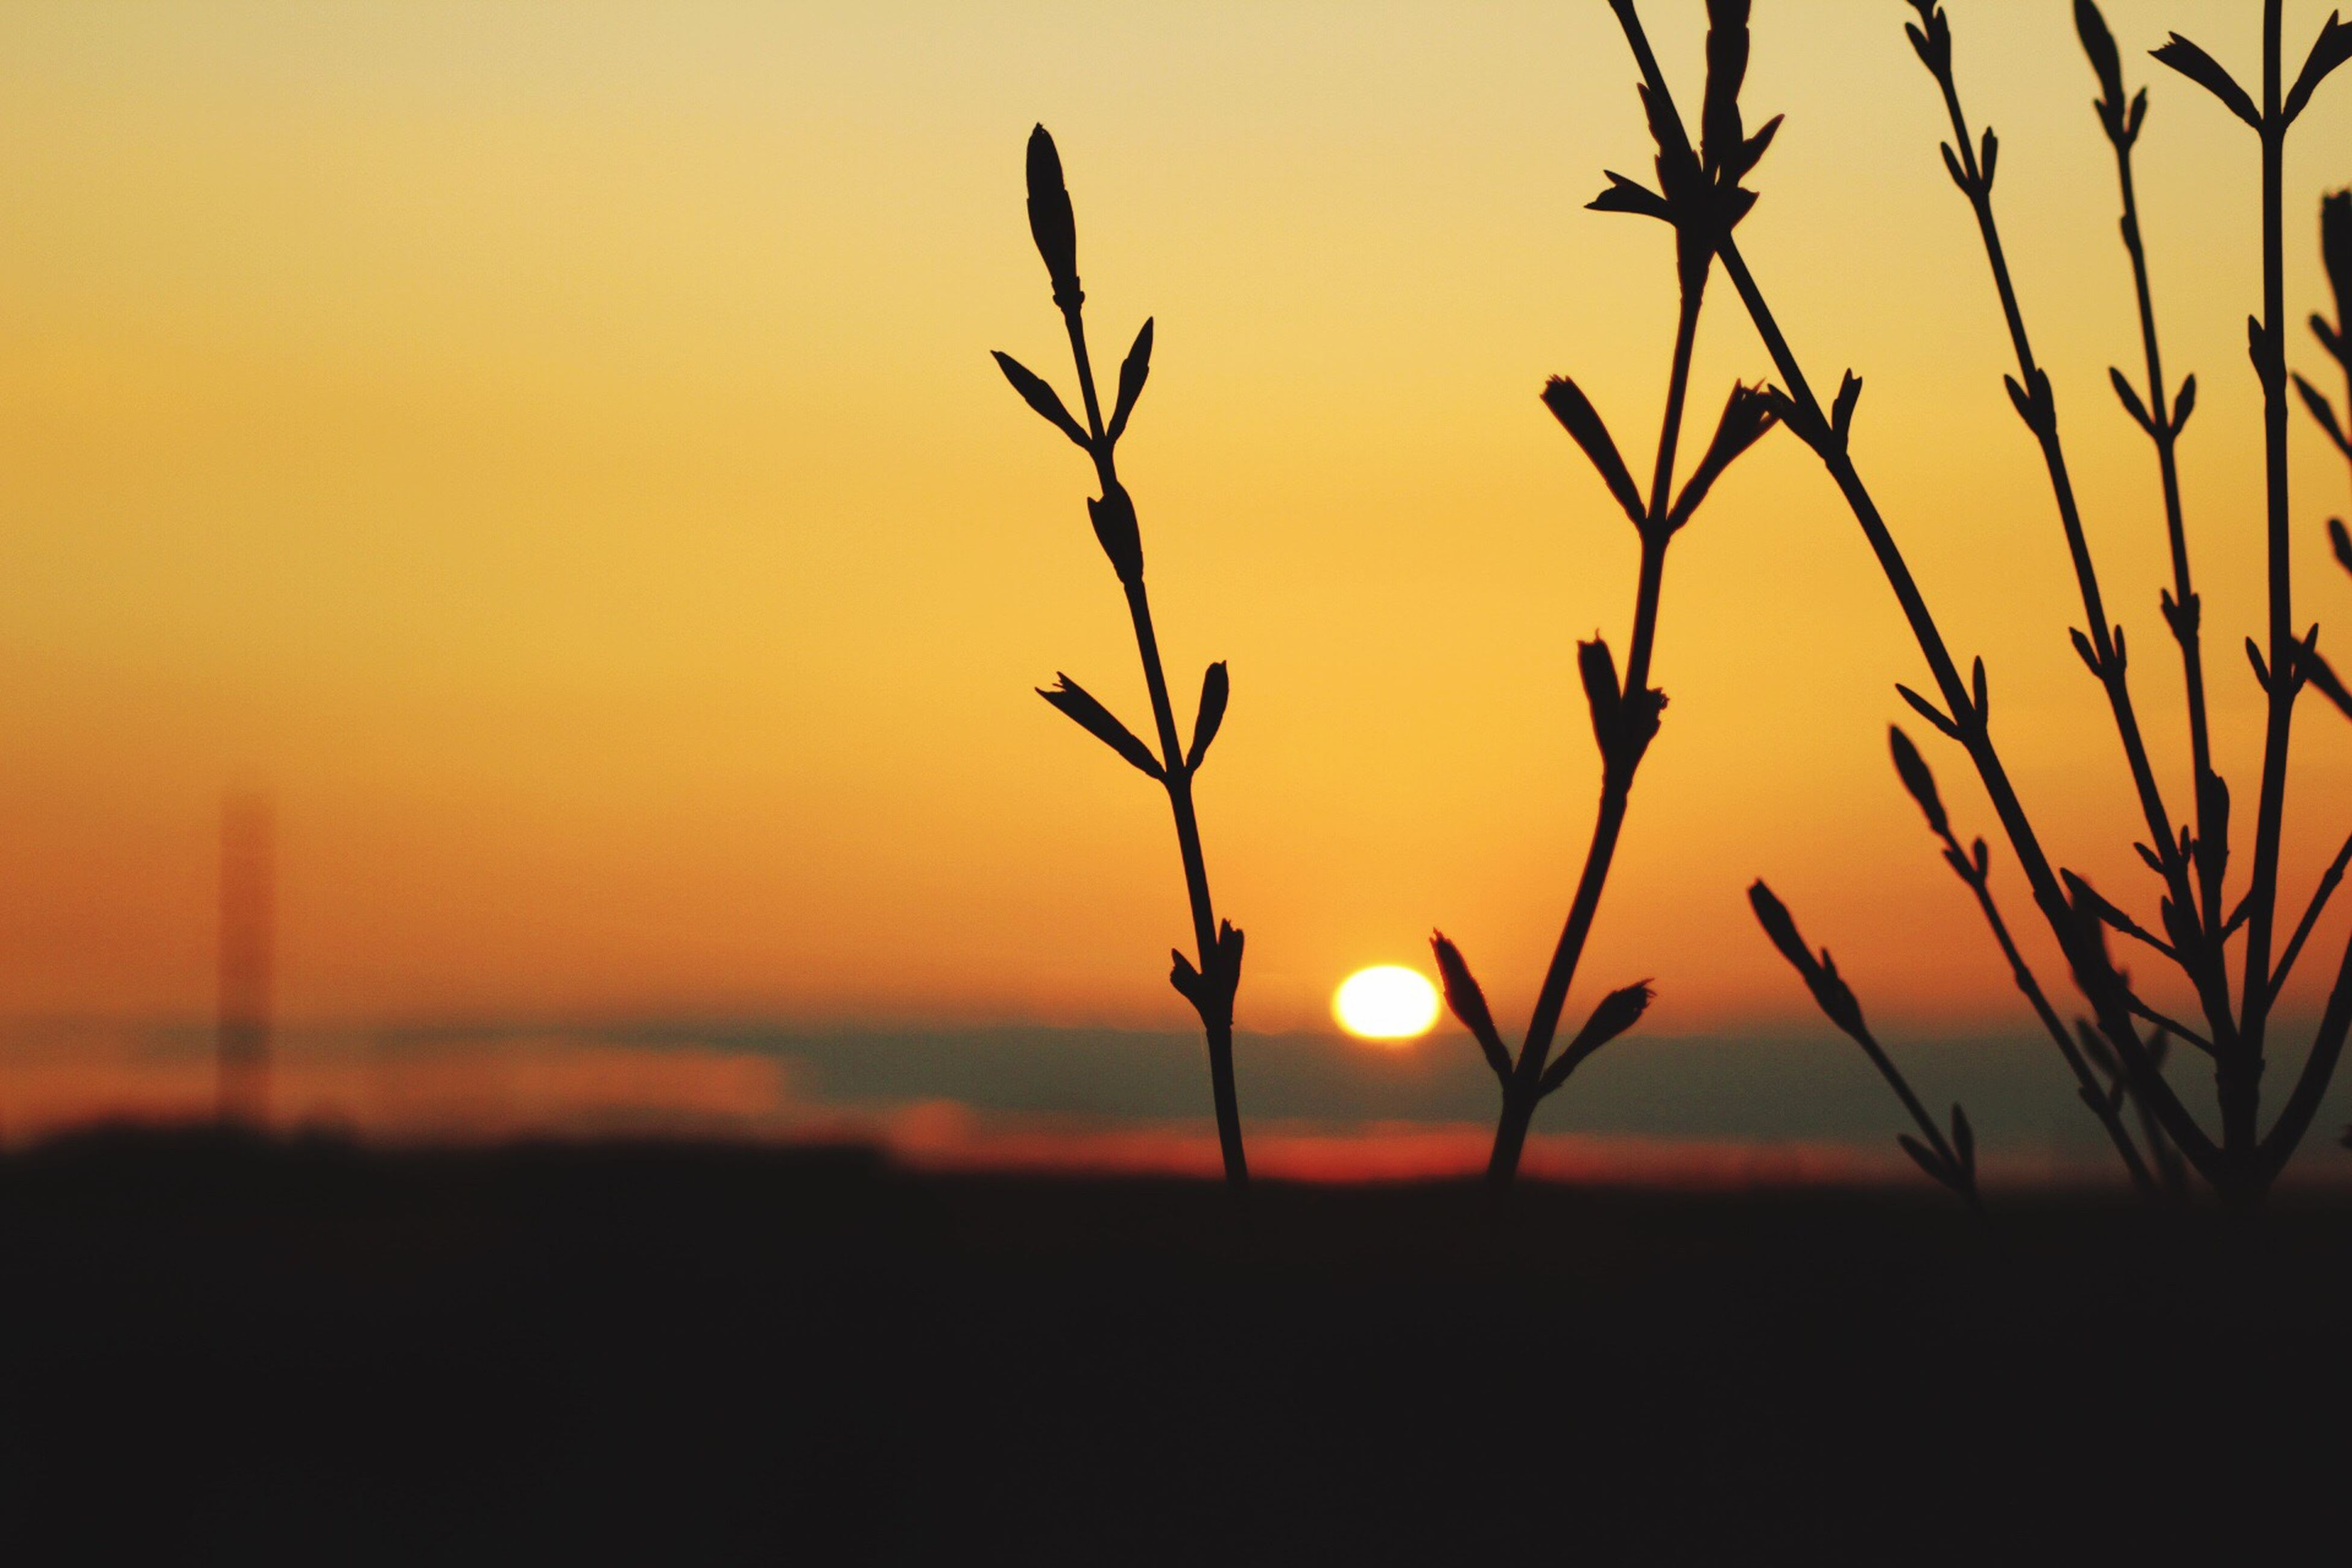 sunset, nature, orange color, growth, silhouette, beauty in nature, no people, sun, tranquility, close-up, outdoors, tranquil scene, sky, scenics, plant, day